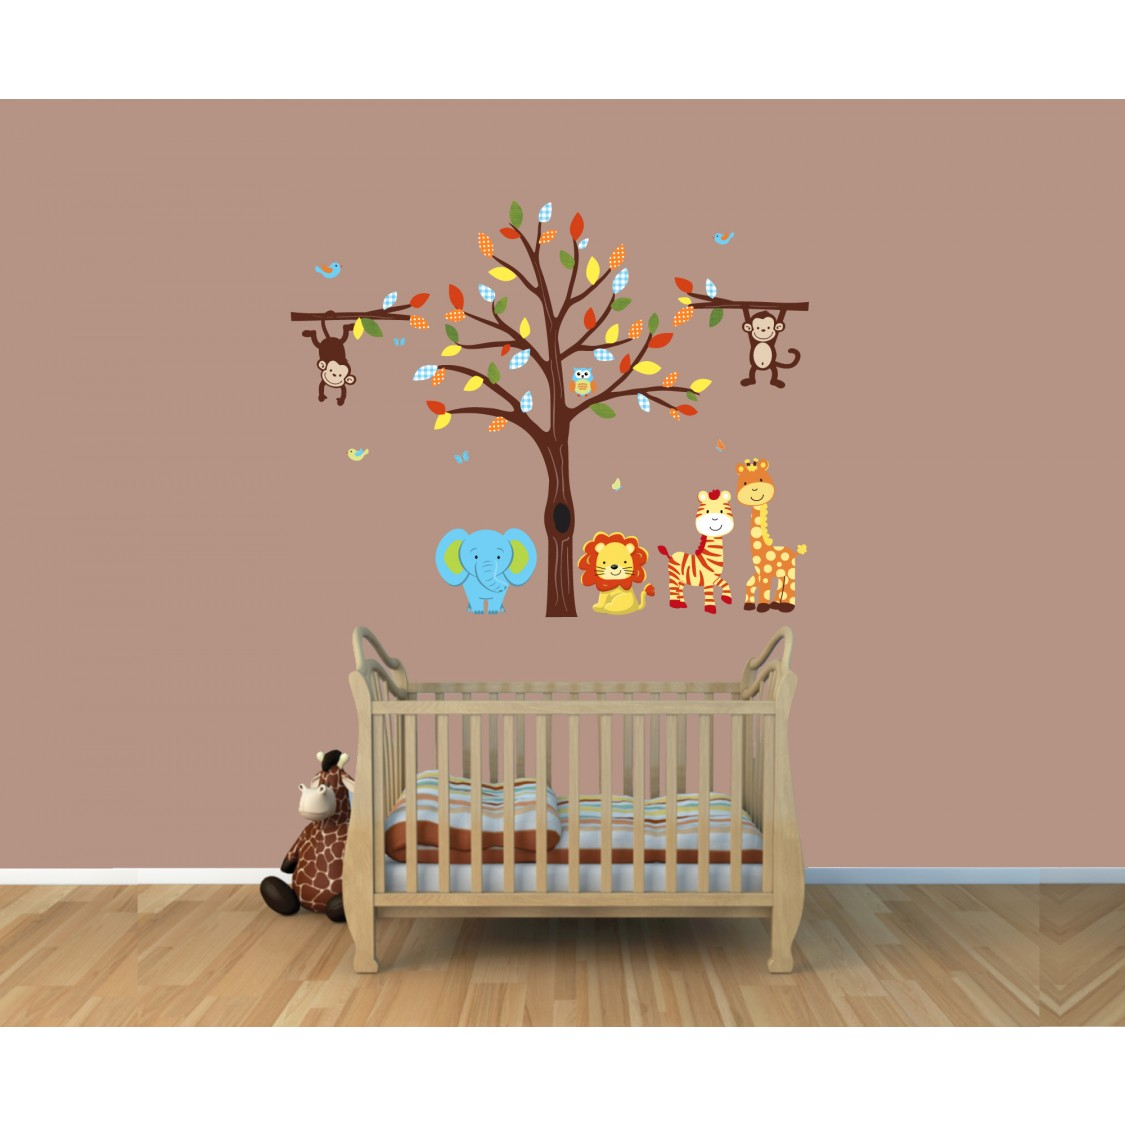 Safari Wall Art jungle,safari wall art with monkey sticker for play rooms